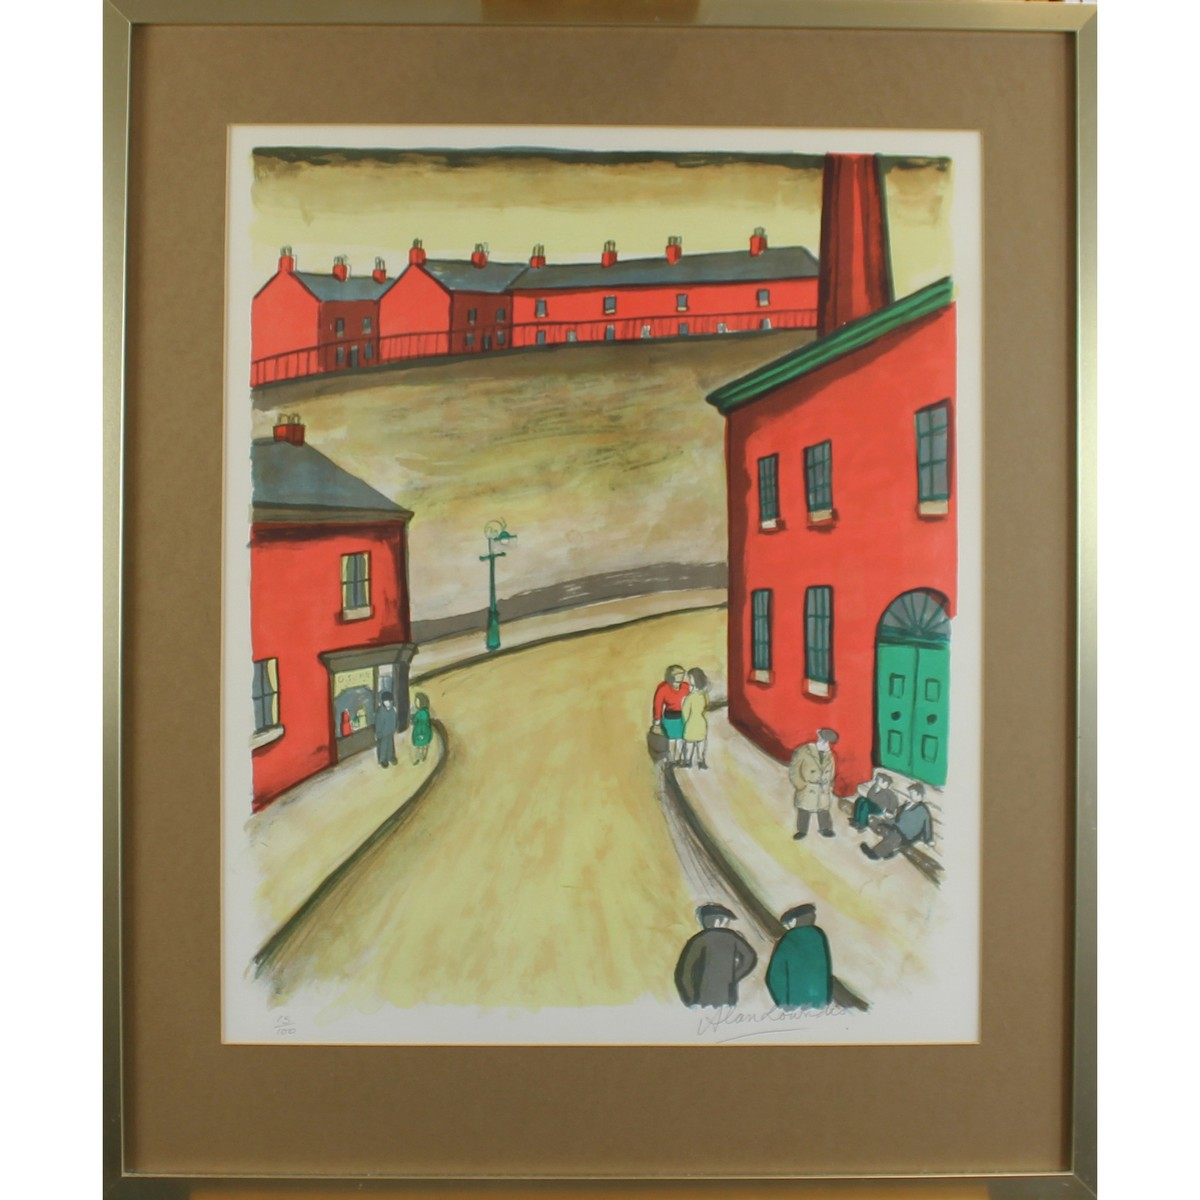 Lot 28 - Lowndes, Alan Bailey 1921-1978 British AR, Stockport